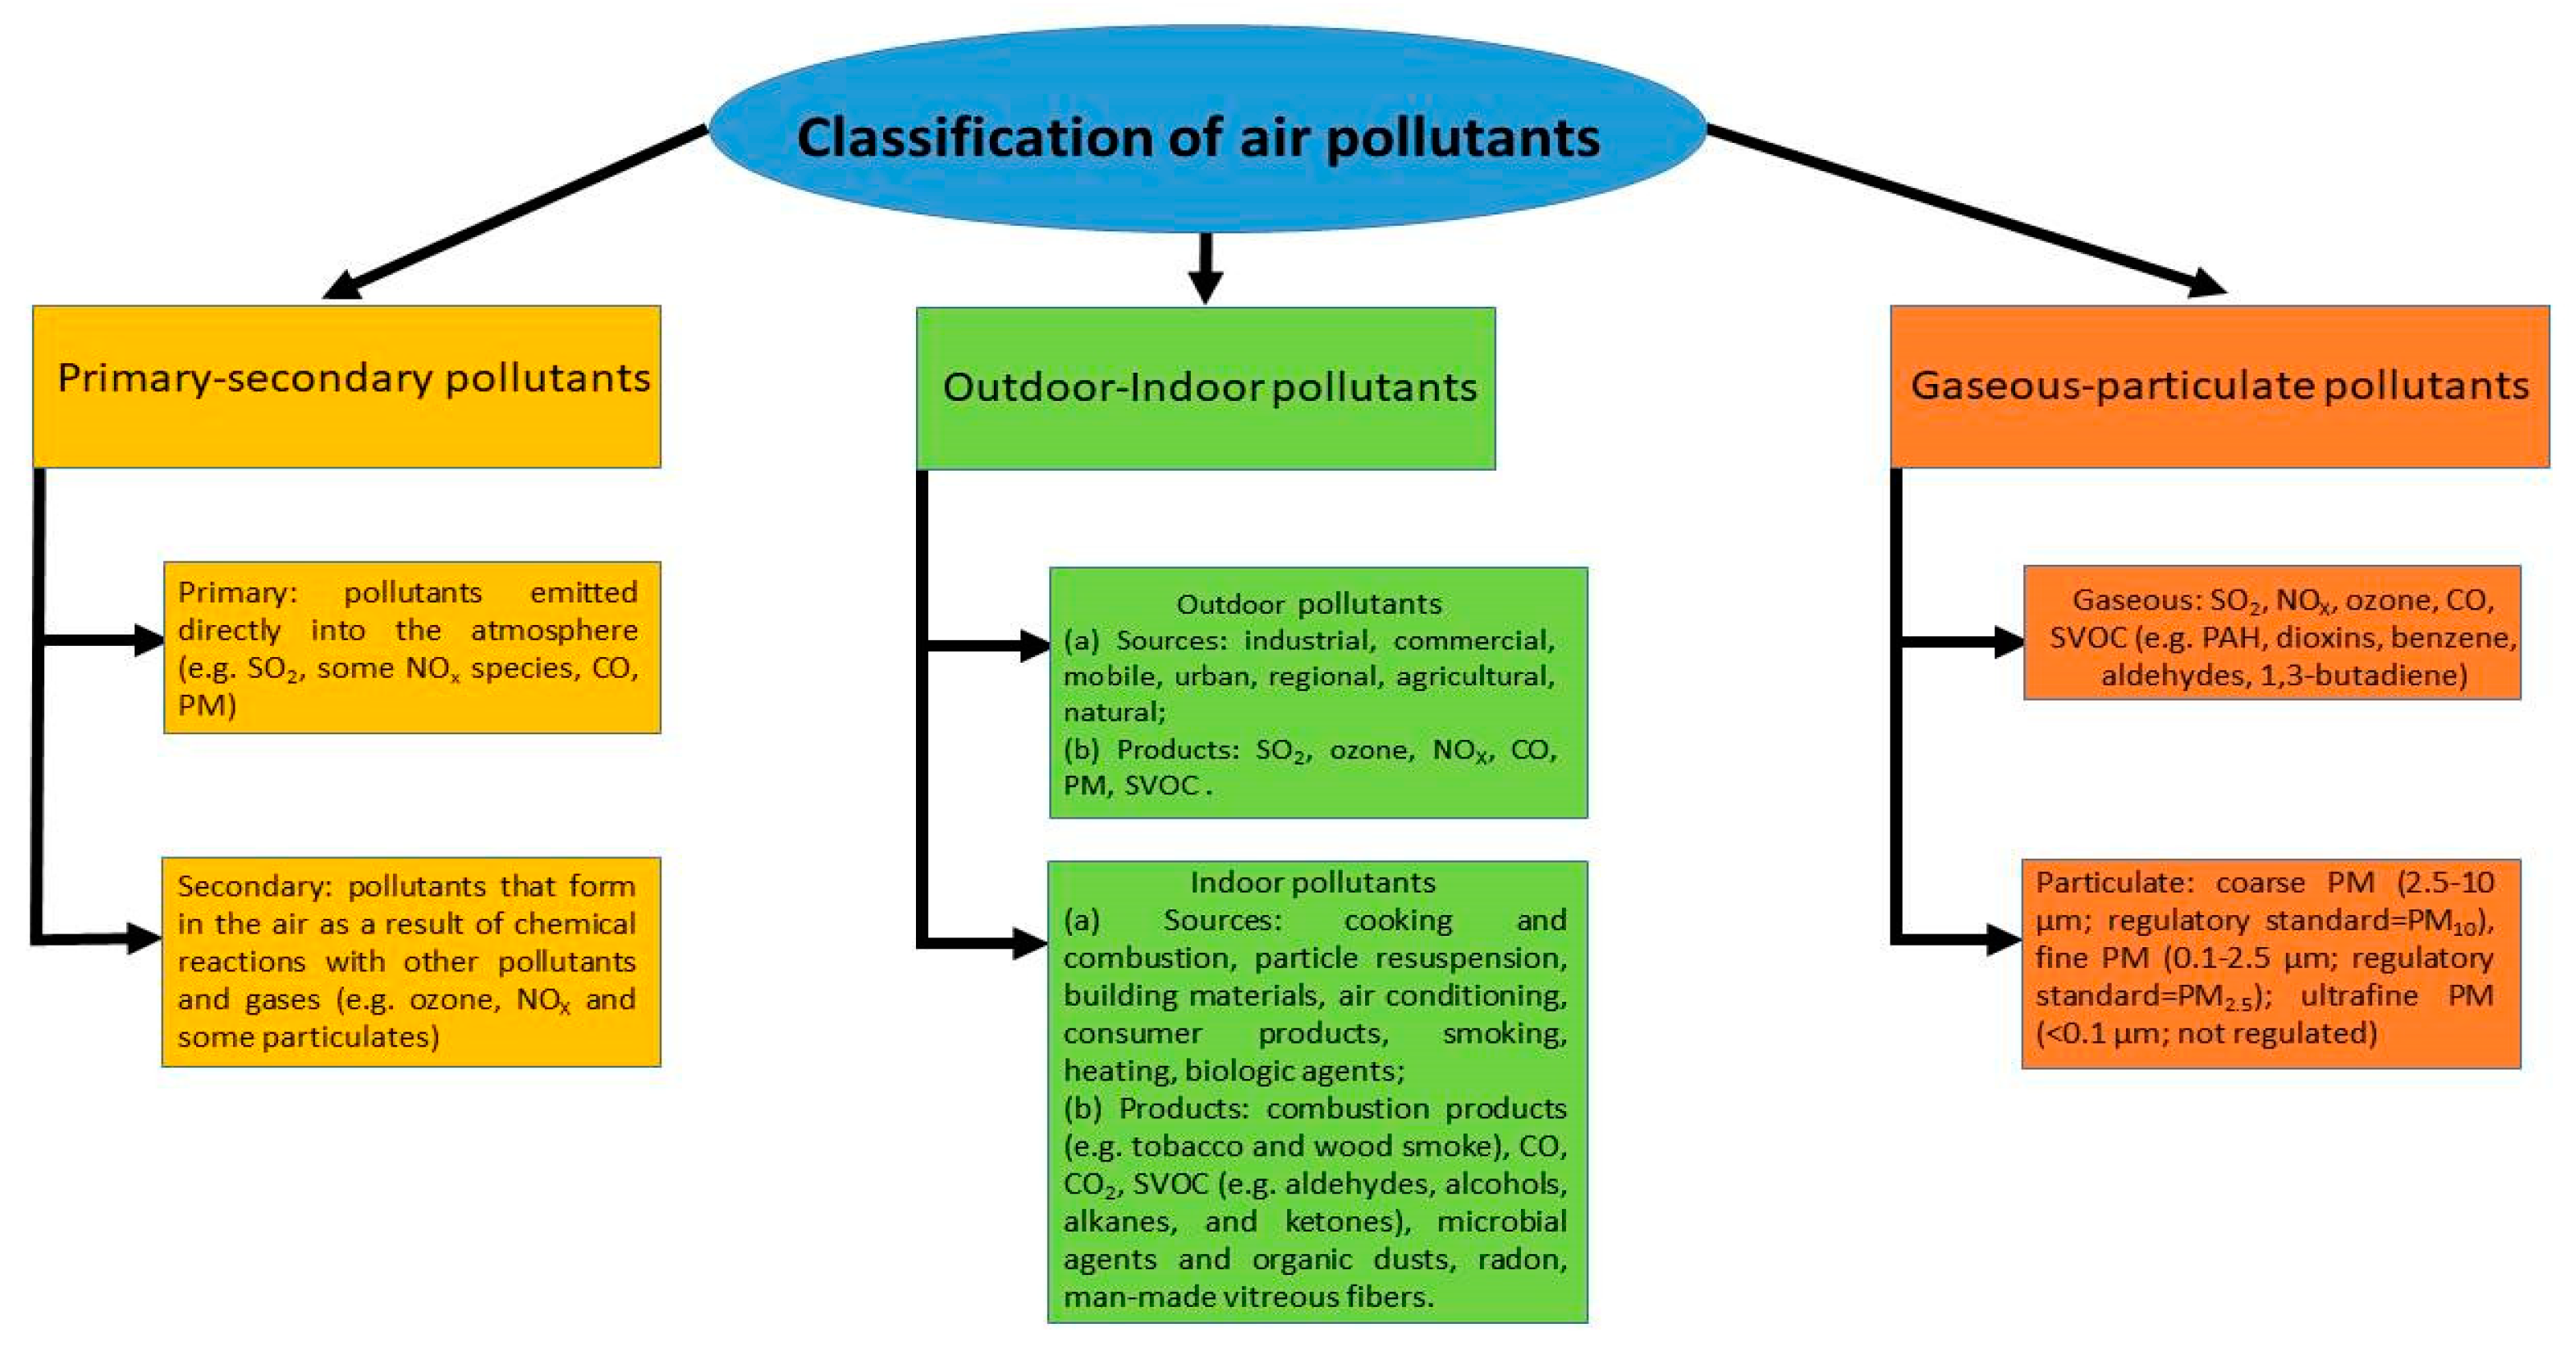 IJERPH | Free Full-Text | Air Pollution and Estimated Health Costs